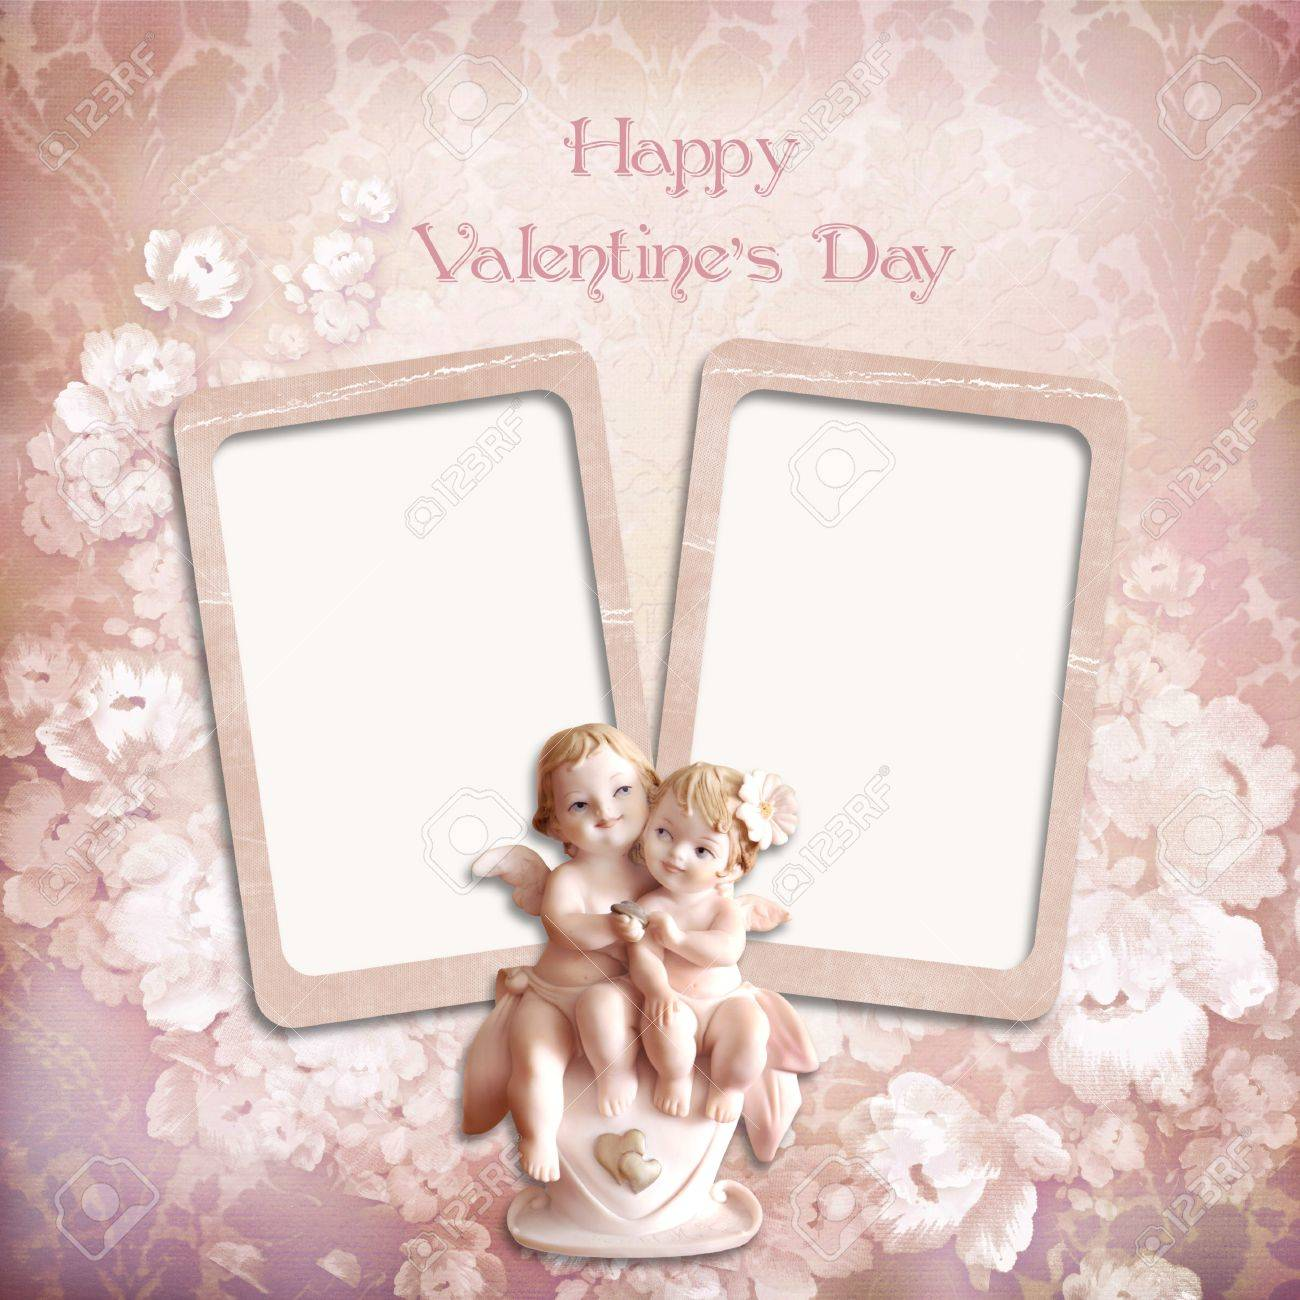 Vintage Valentine Background With Frames And Angels Stock Photo ...